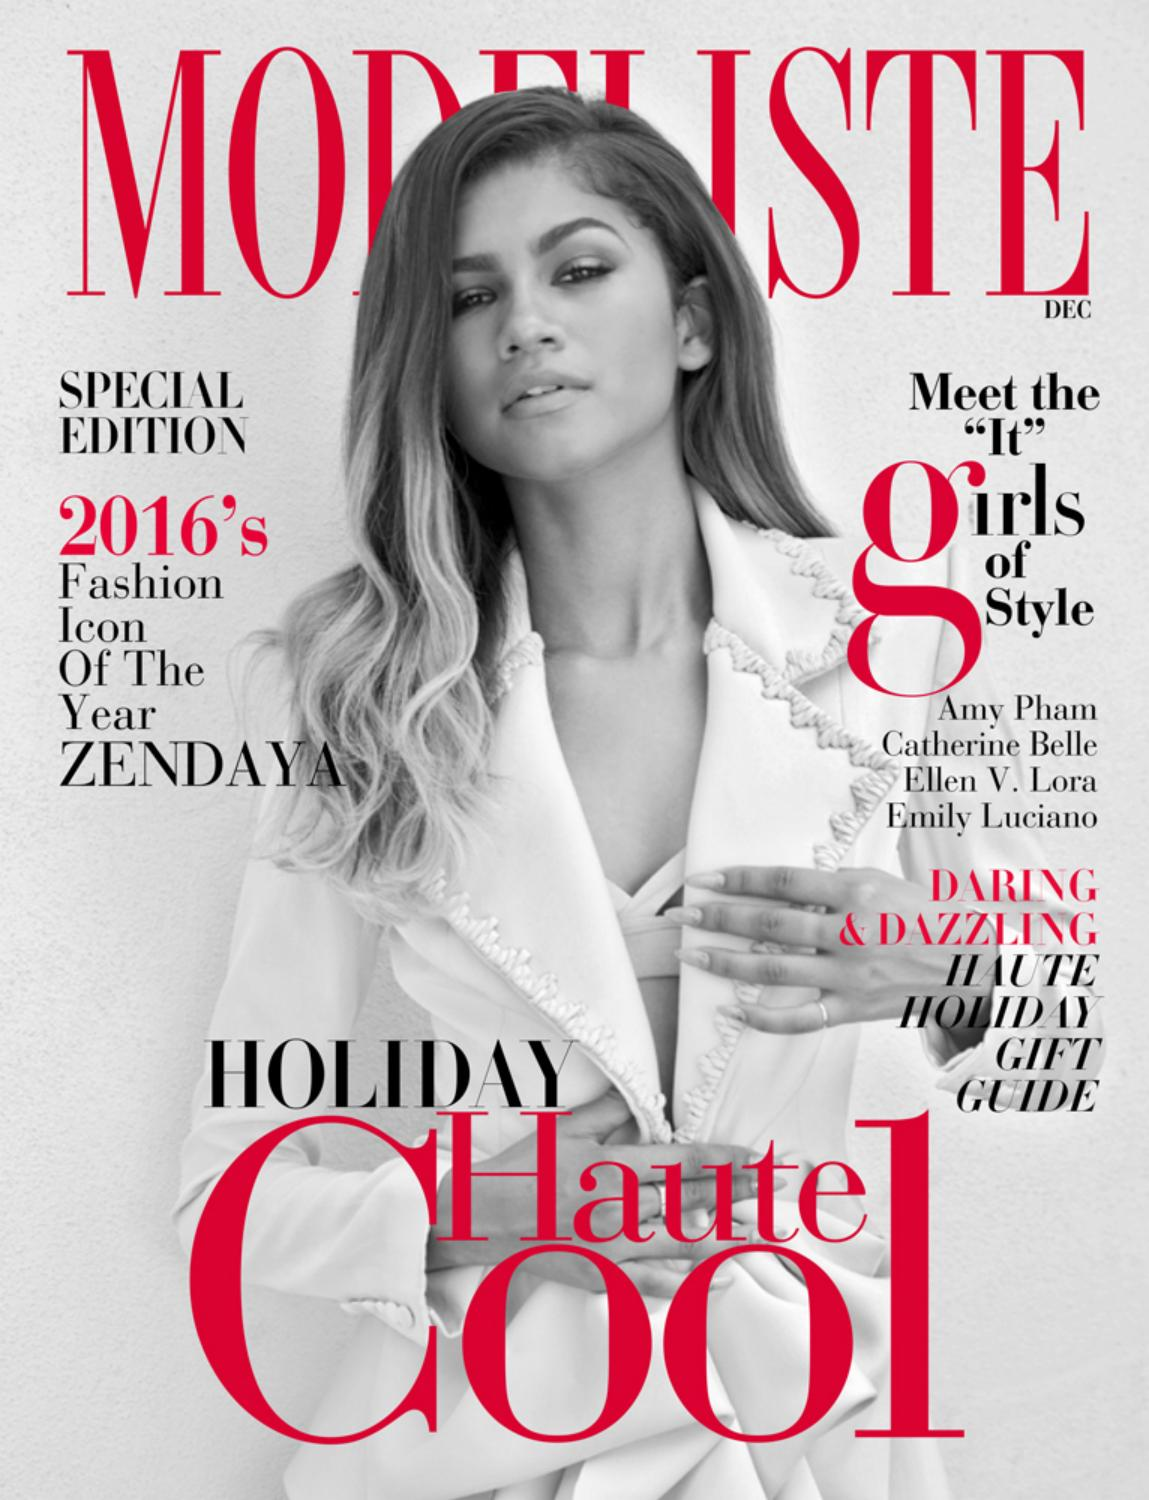 Modeliste december 2016 by modeliste magazine issuu fandeluxe Gallery